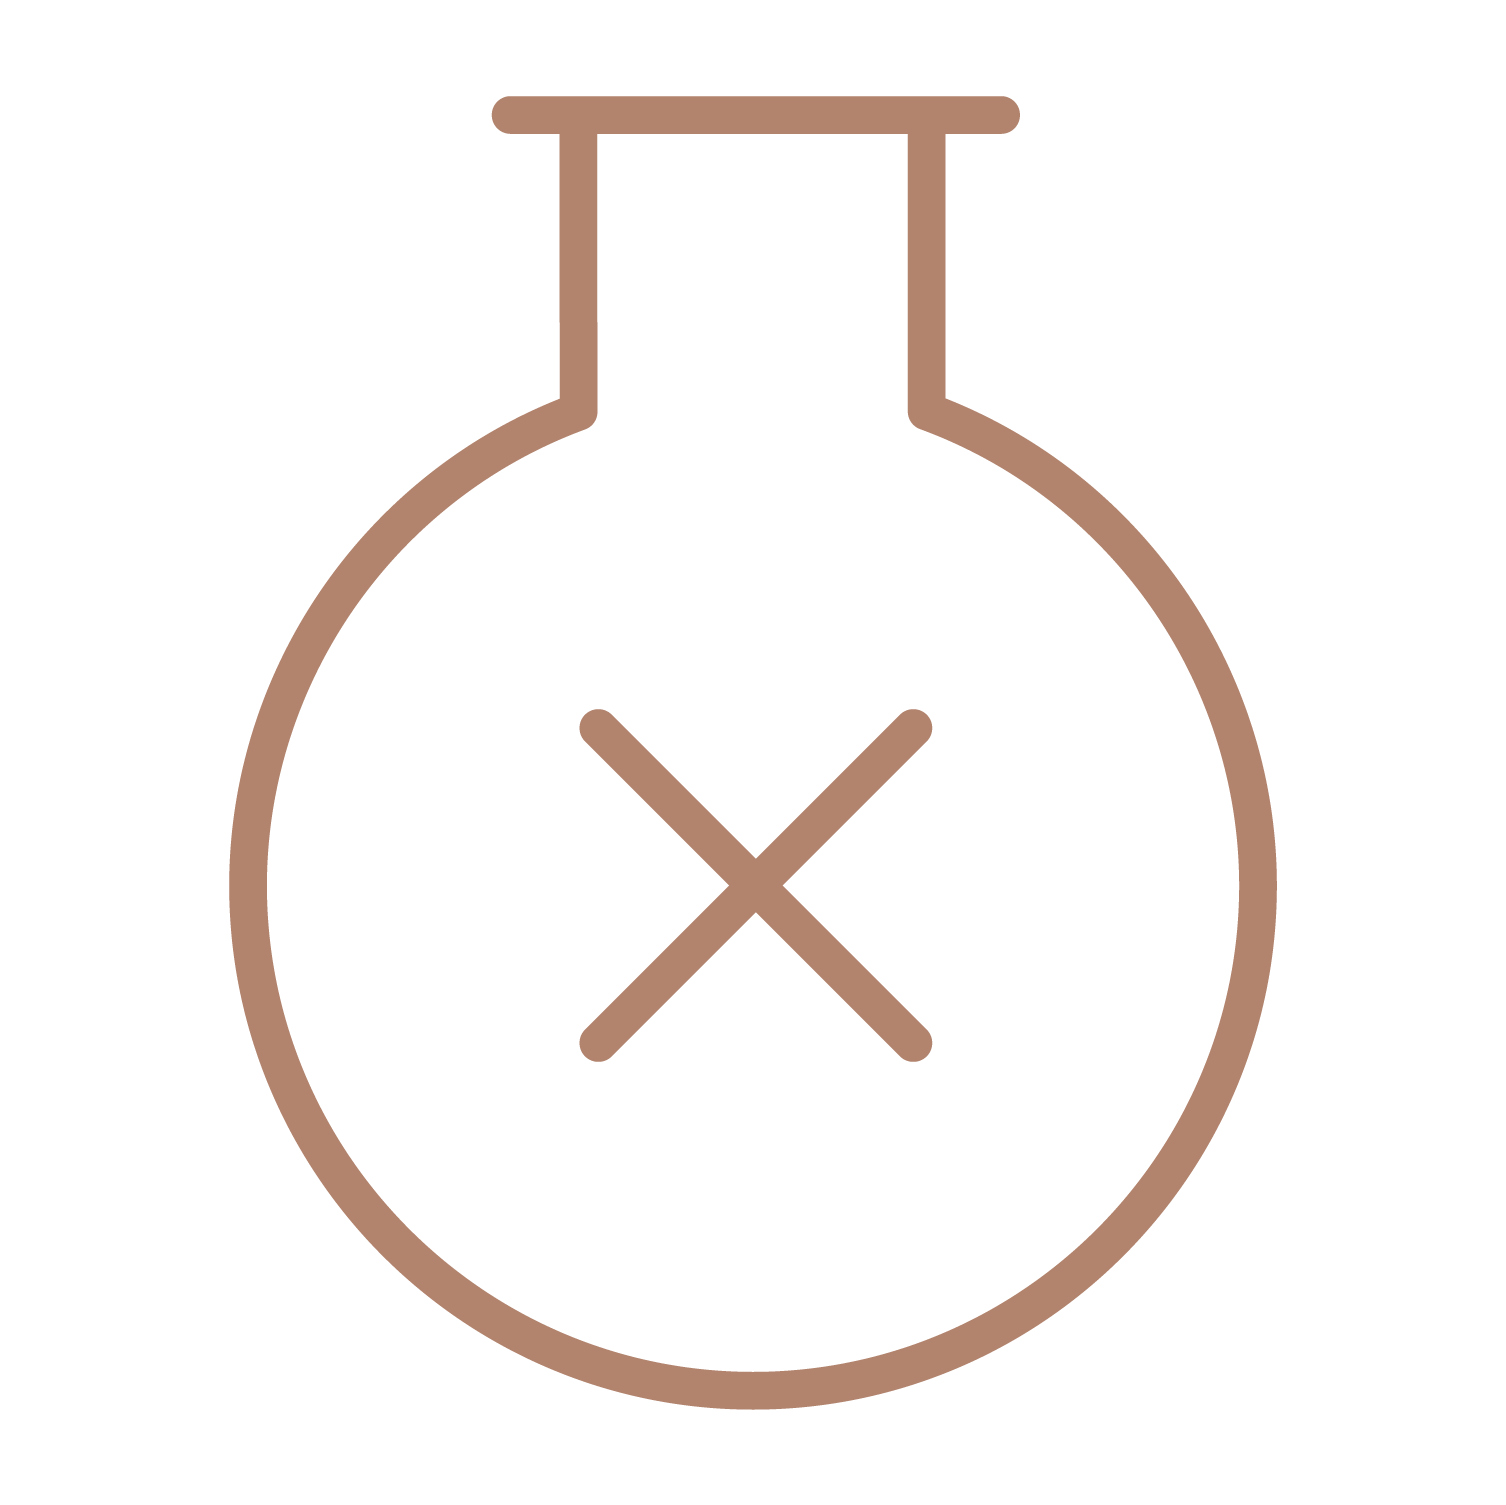 Flask with a cross in the middle representing chemical free constituents of Glide Jelly